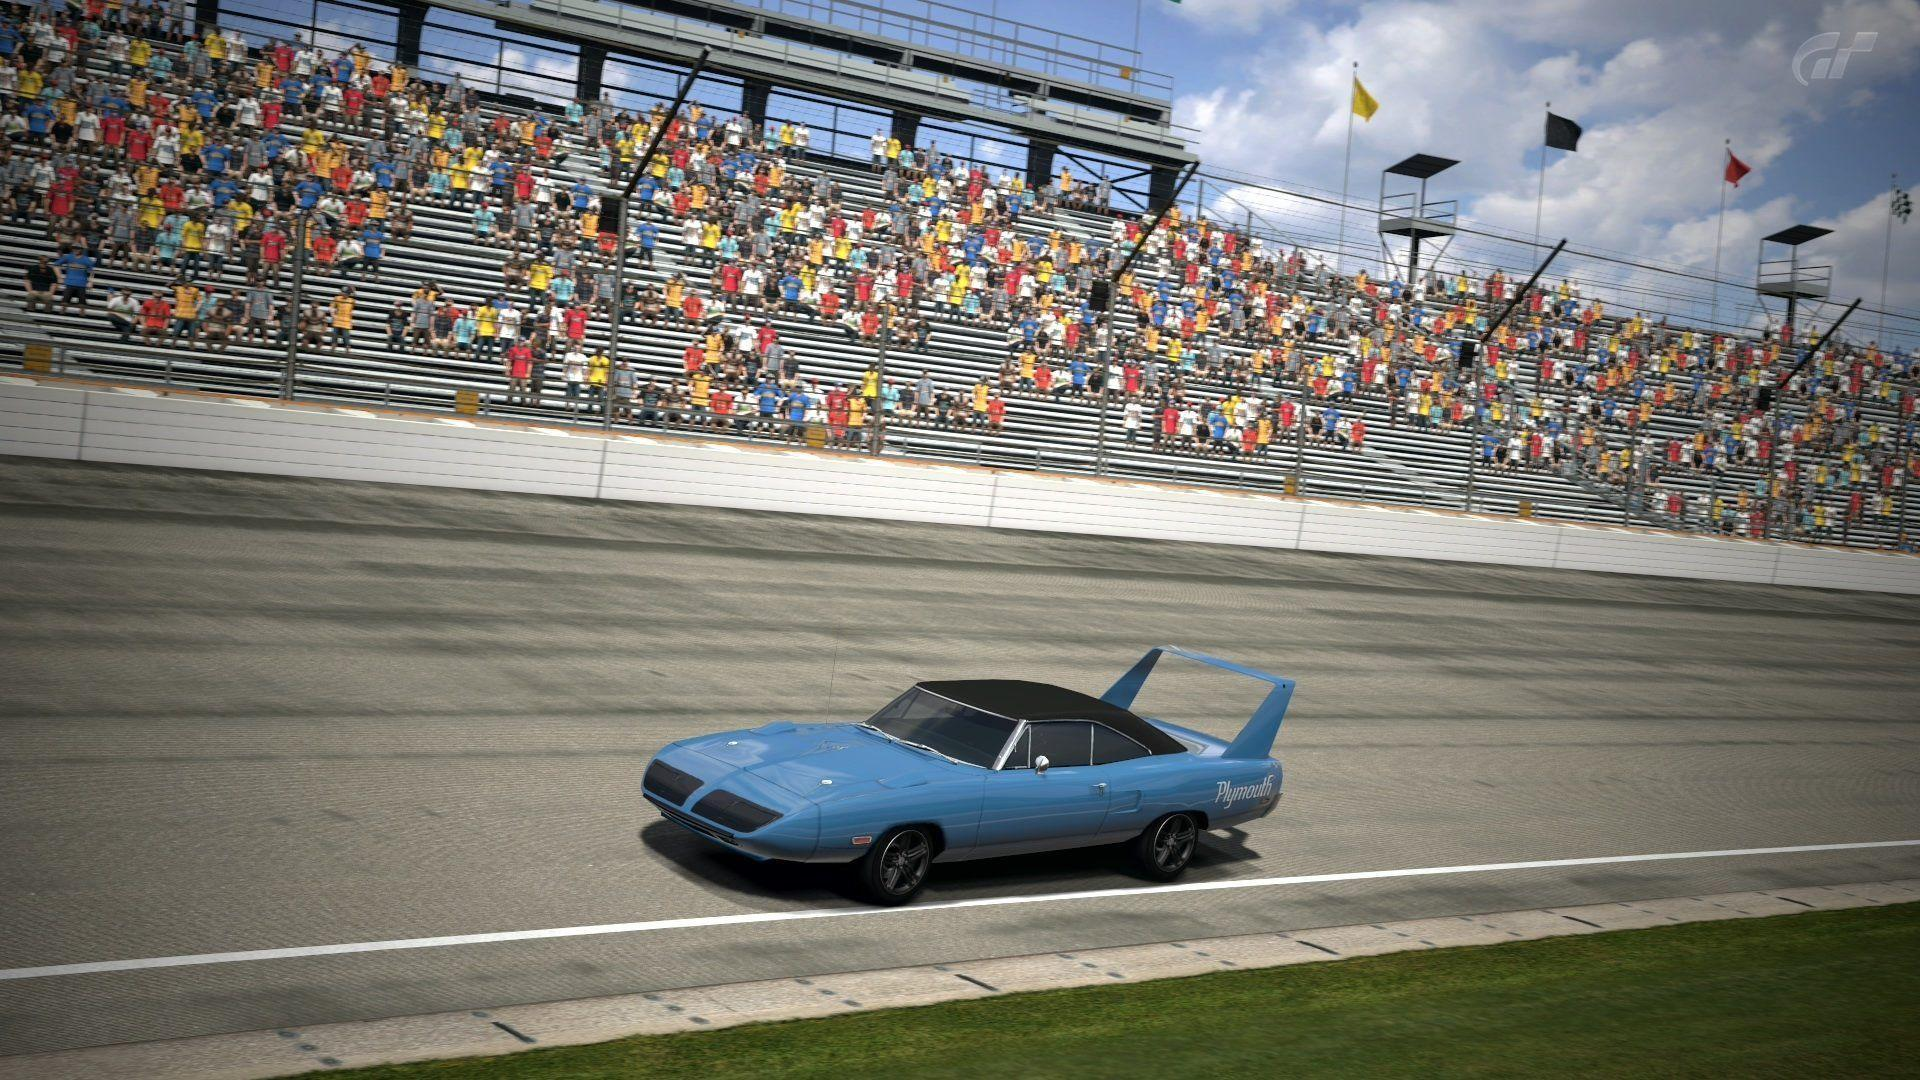 2 Plymouth Road Runner Superbird HD Wallpapers | Backgrounds ...